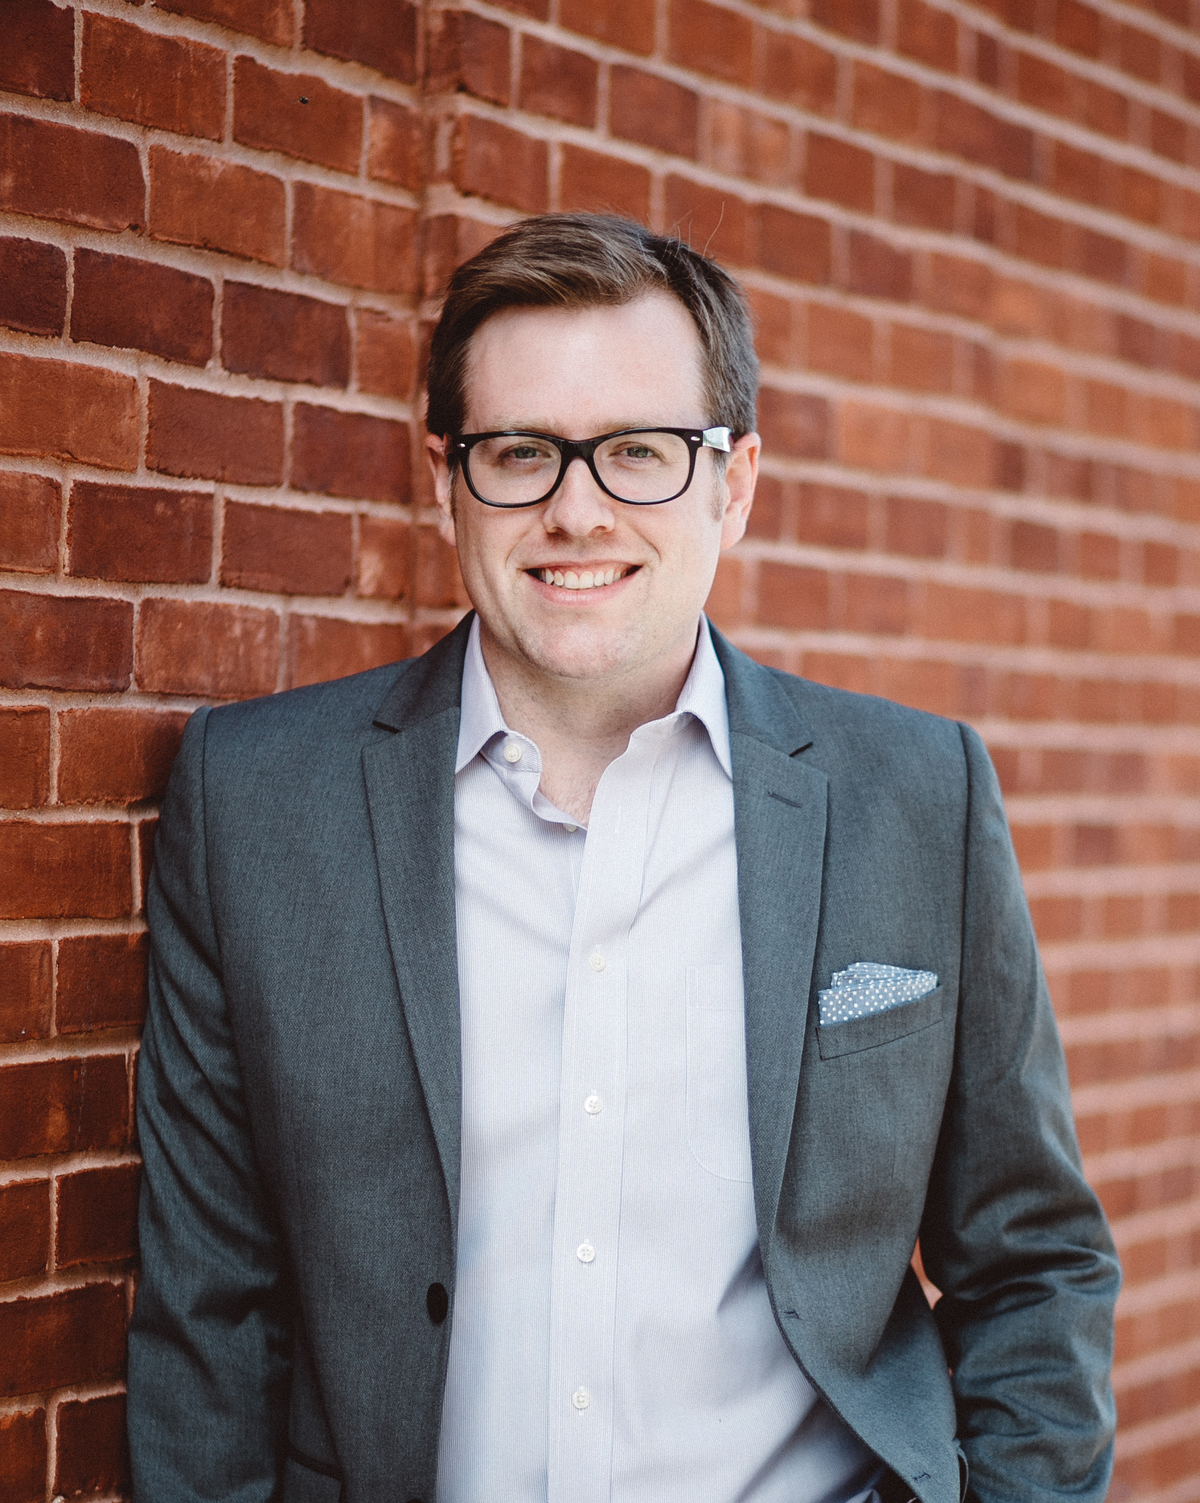 After earning a degree in communication from ACU, Jeff Giddens led the digital marketing team for Mark Cuban's TV network and consulted with such organizations as Compassion International, Mercy Ships, Feed the Children and Dallas Theological Seminary before starting his company NextAfter.